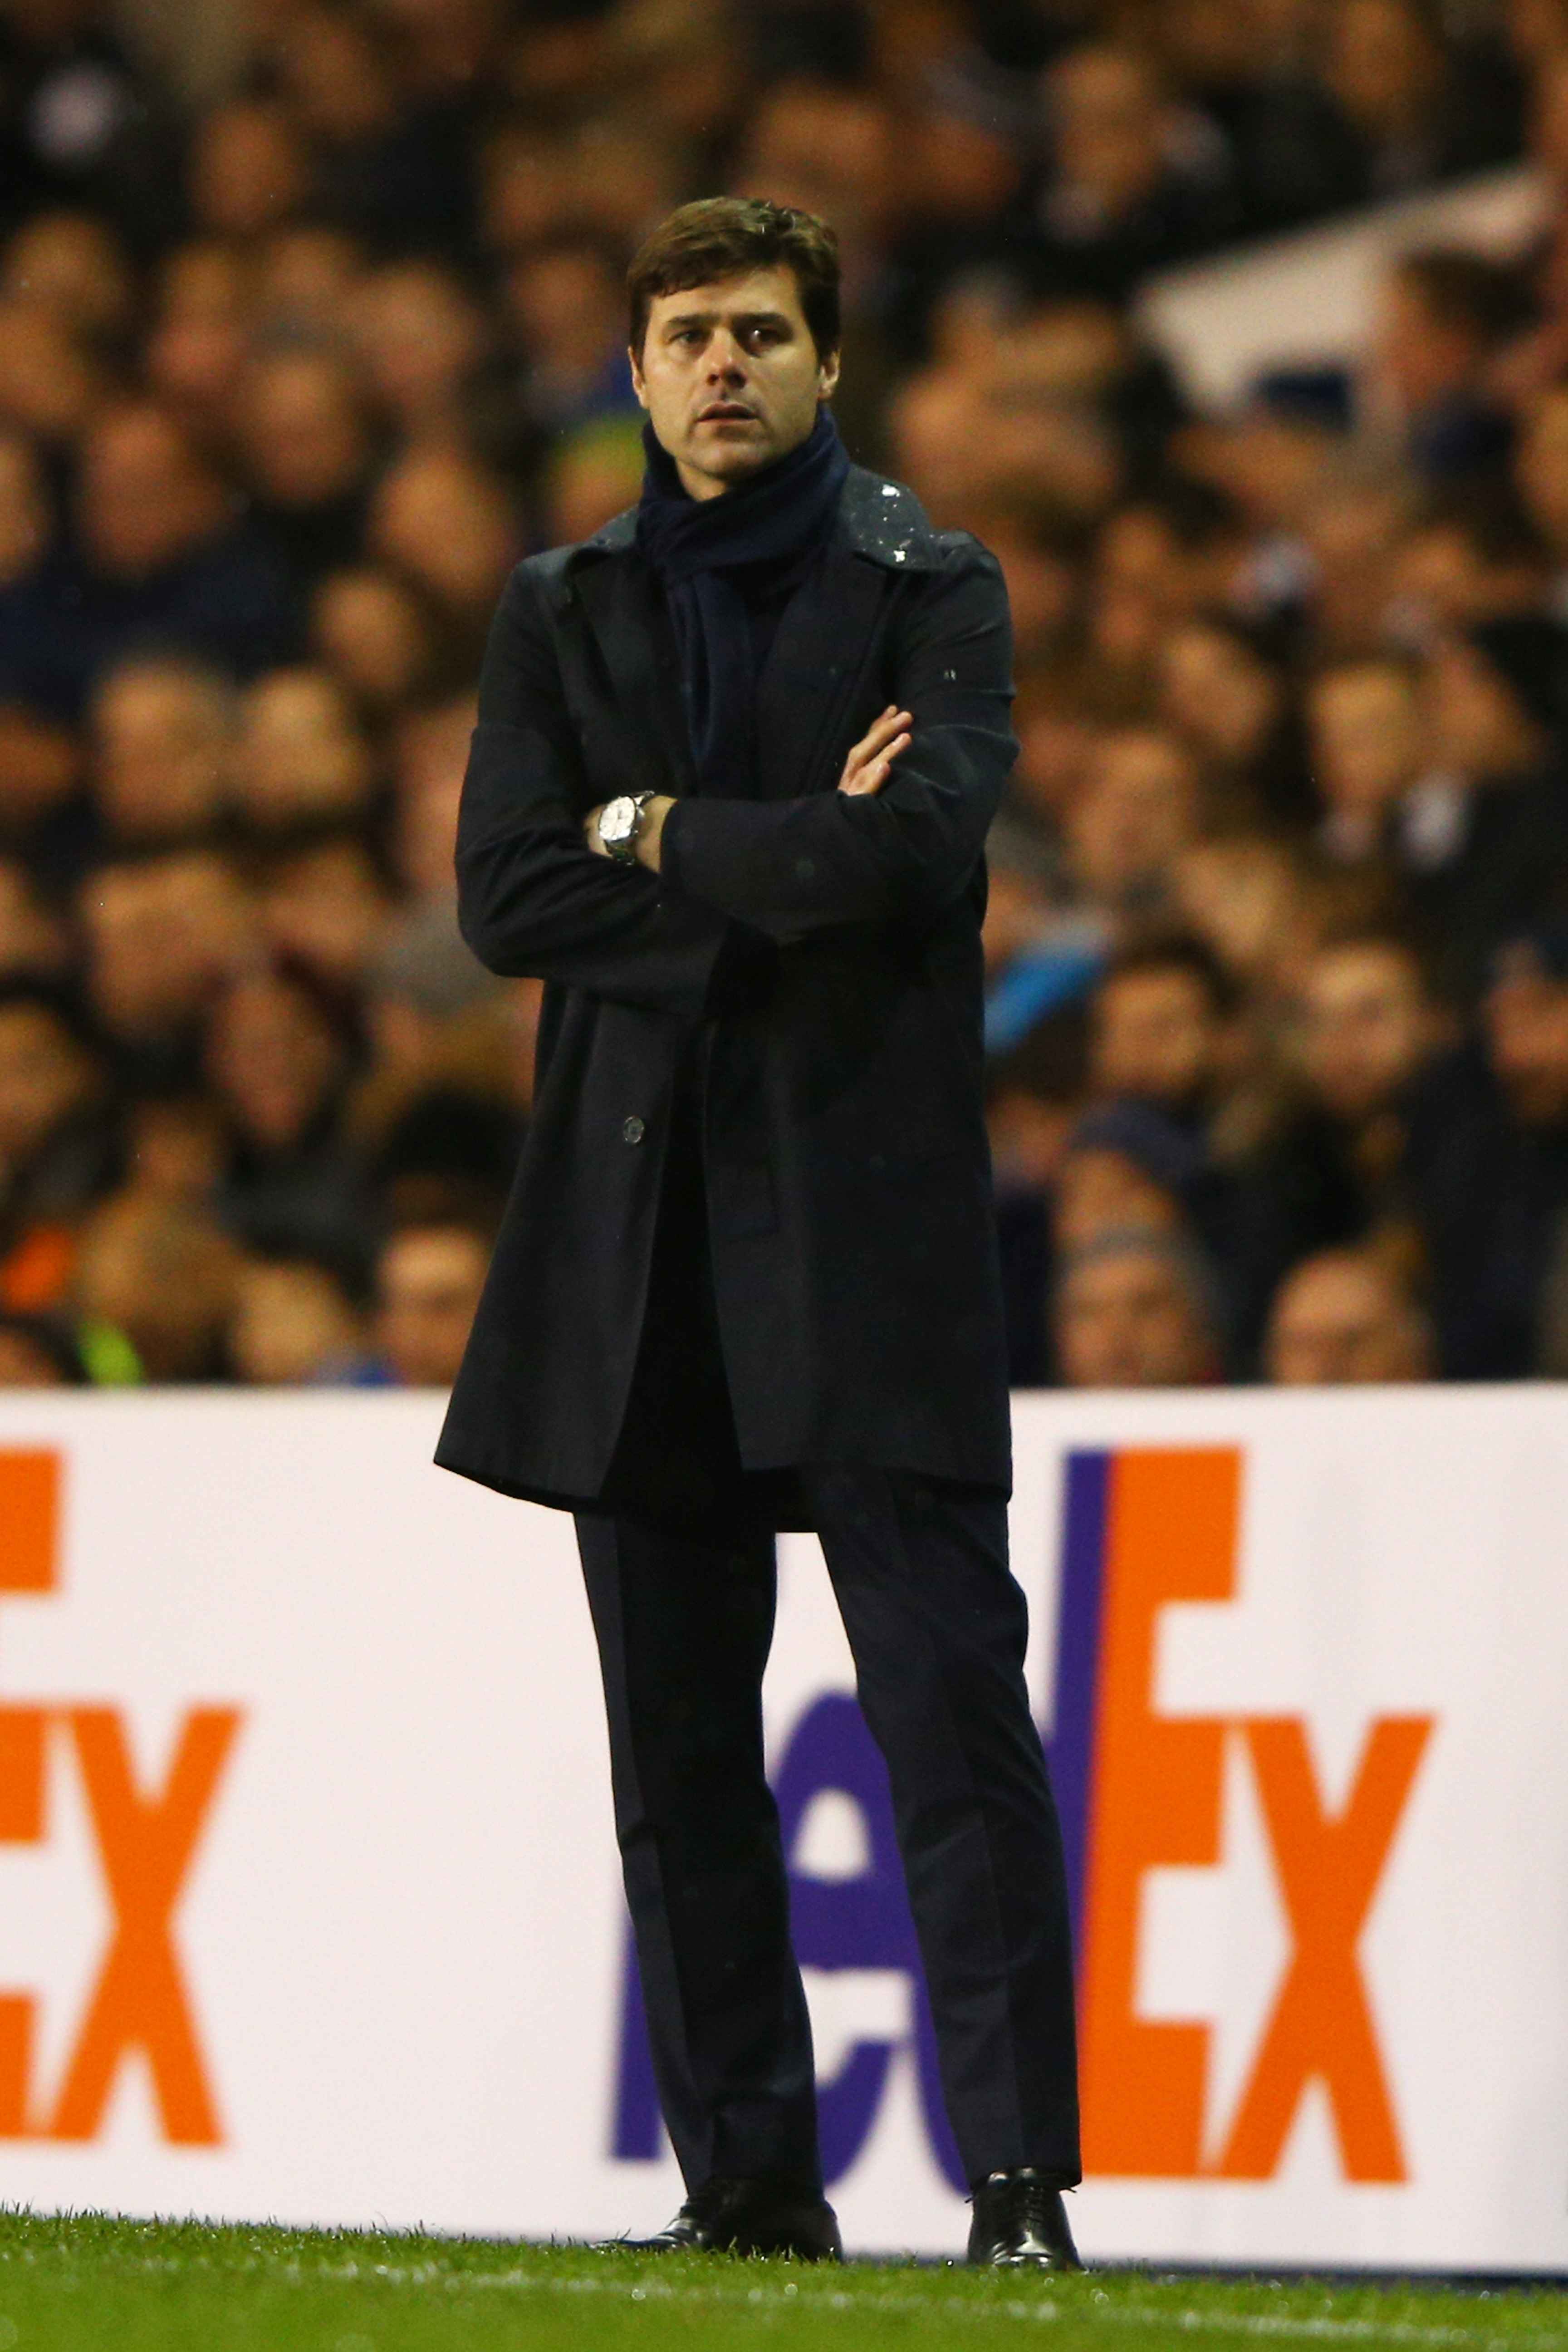 Mauricio Pochettino the manager of Spurs looks on during the UEFA Europa League Group J match between Tottenham Hotspur and AS Monaco at White Hart Lane on December 10, 2015 in London, United Kingdom. (Photo by Ian Walton/Getty Images)